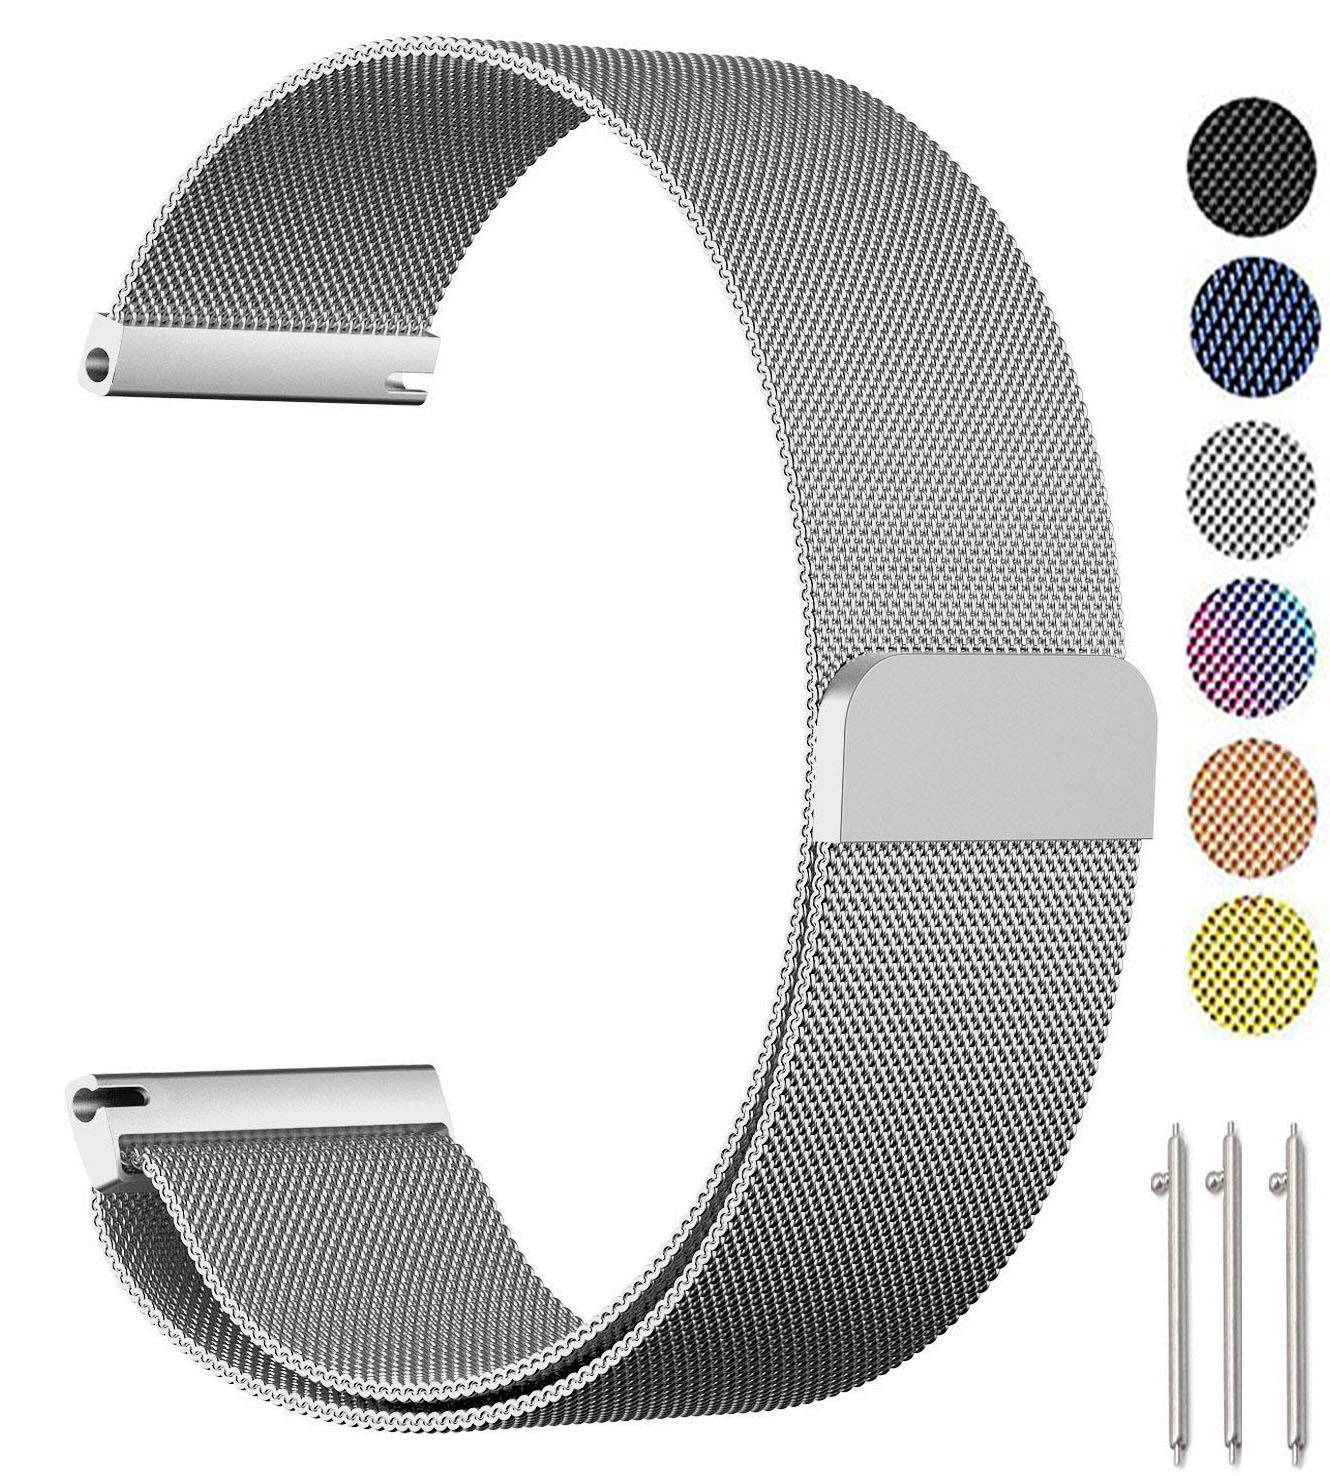 Baoking for Samsung Gear Sport/Galaxy Watch 42mm Band, 20mm Stainless Steel Milanese Loop Replacement Strap with Magnet Lock for Gear Sport /S2 Classic/Galaxy Watch Active(Silver,20mm)